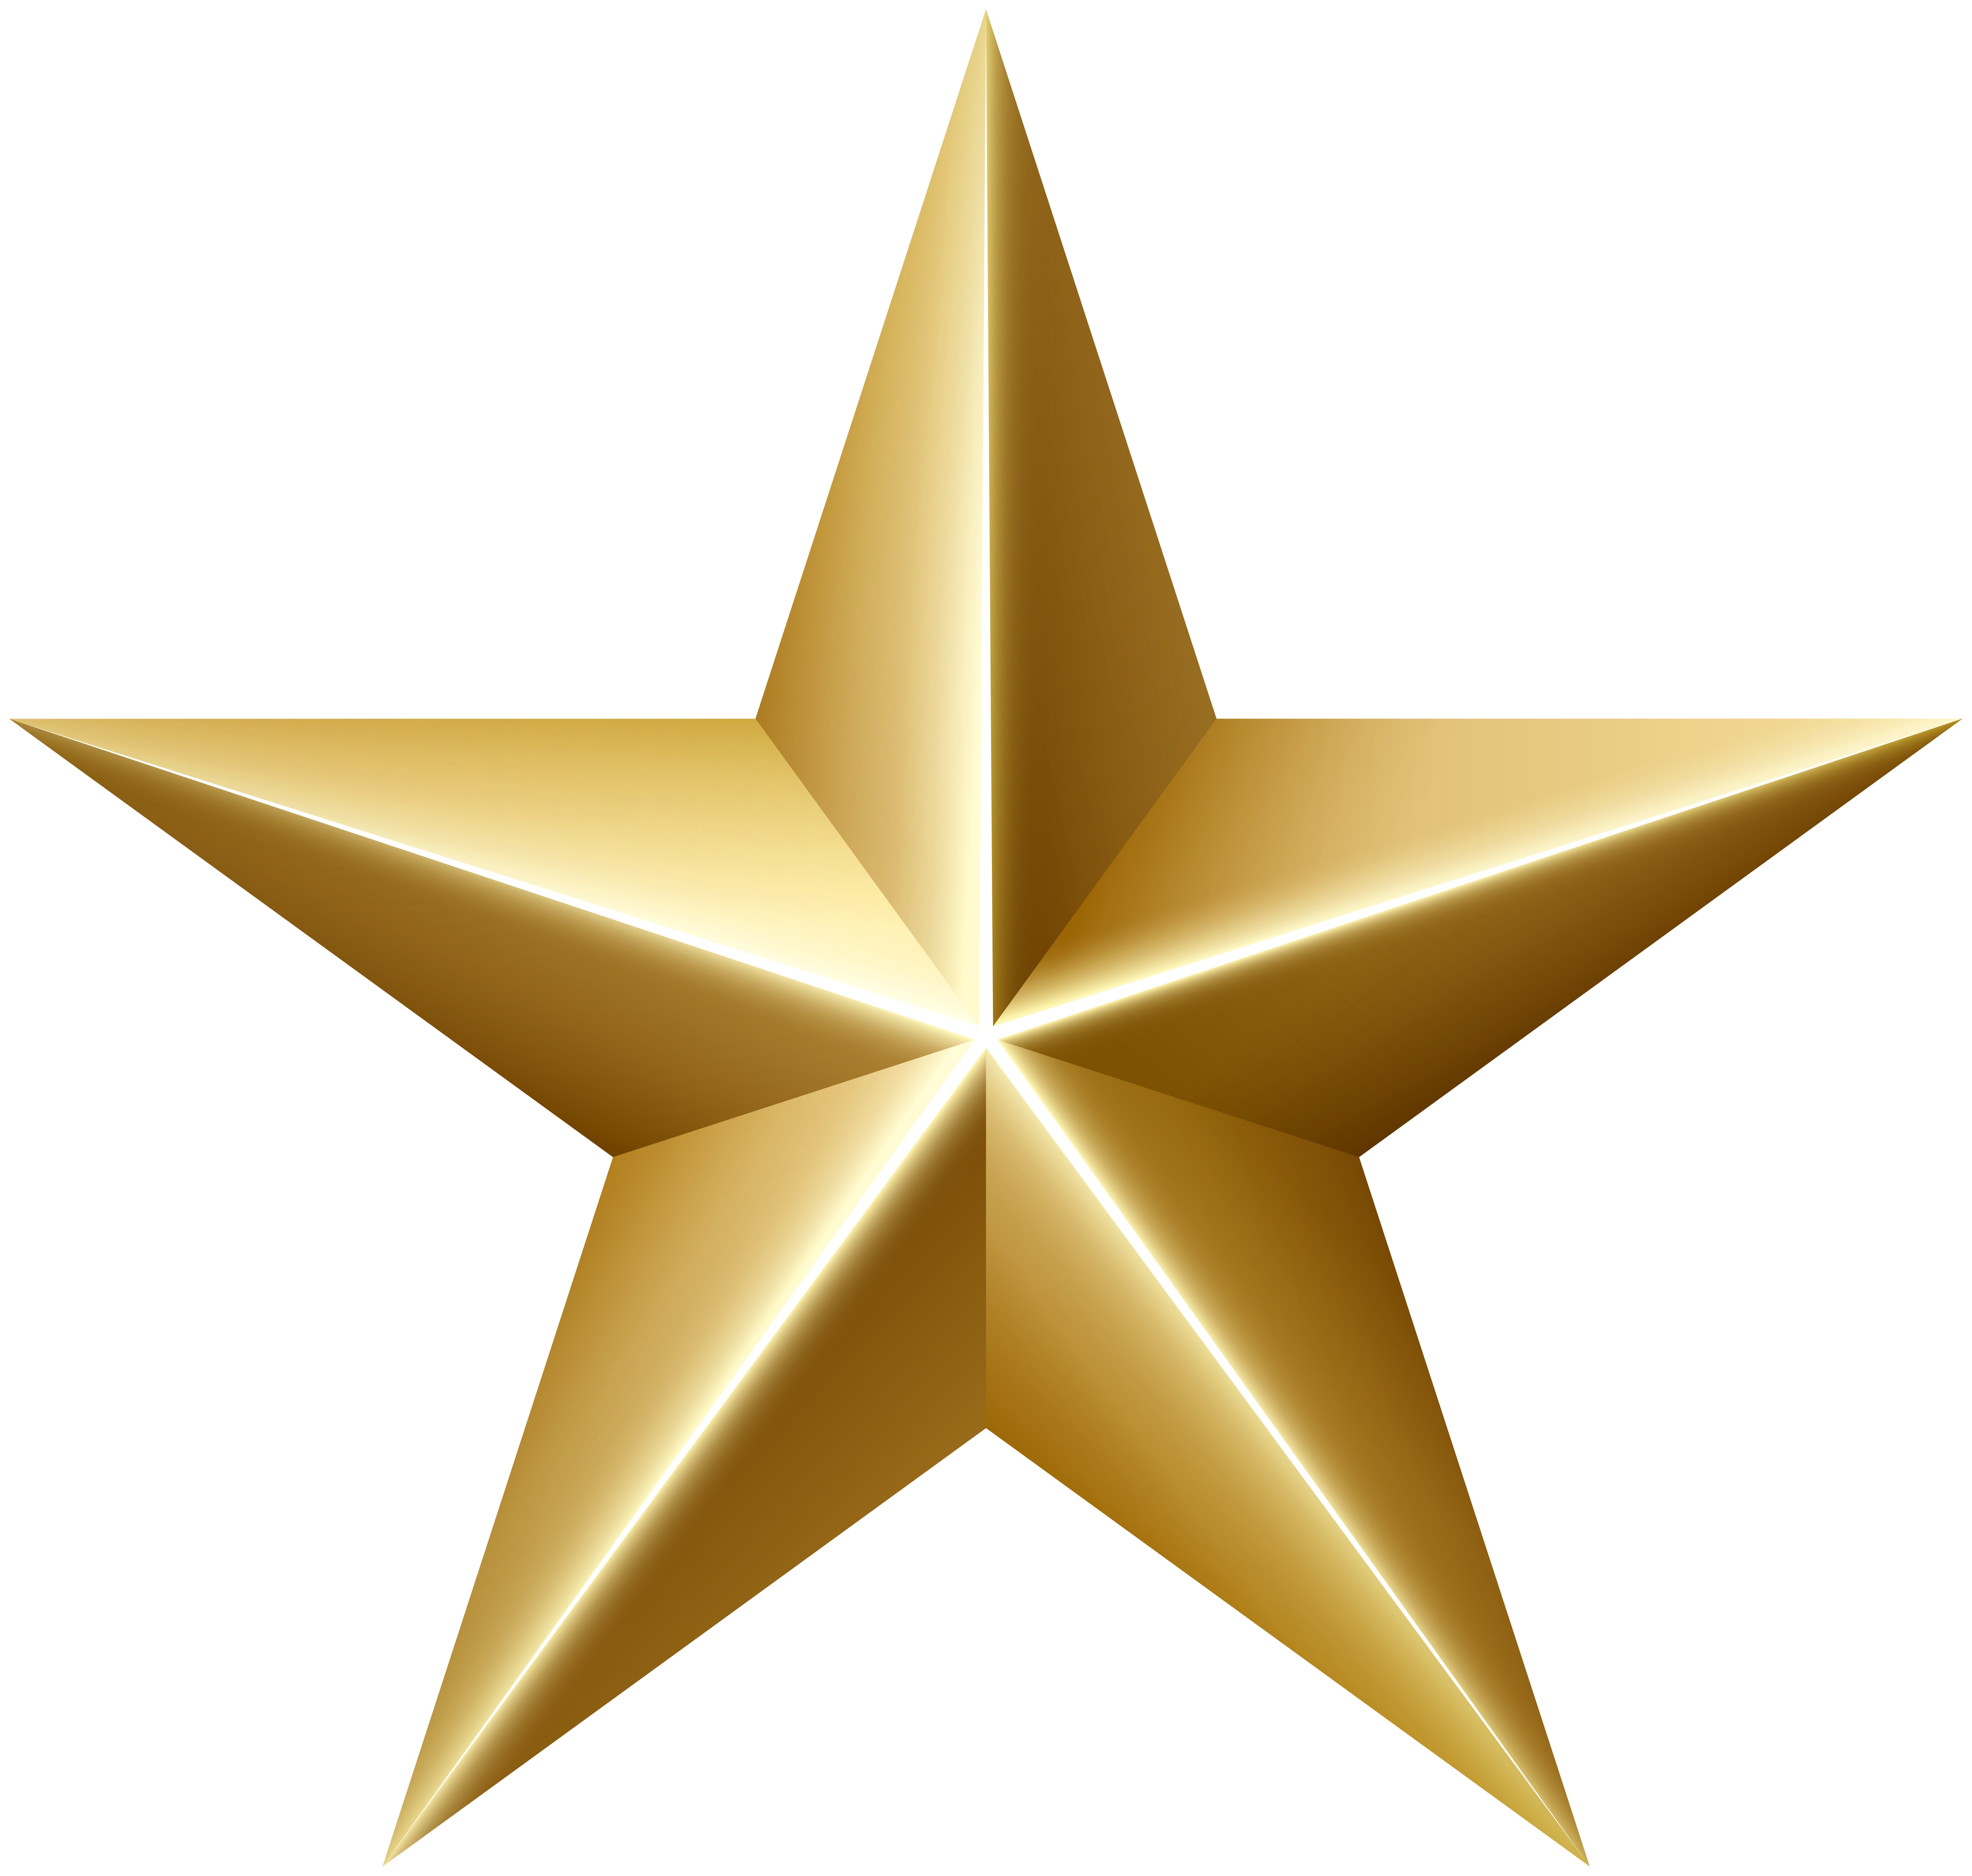 gold star clip art 10 free Cliparts   Download images on ...